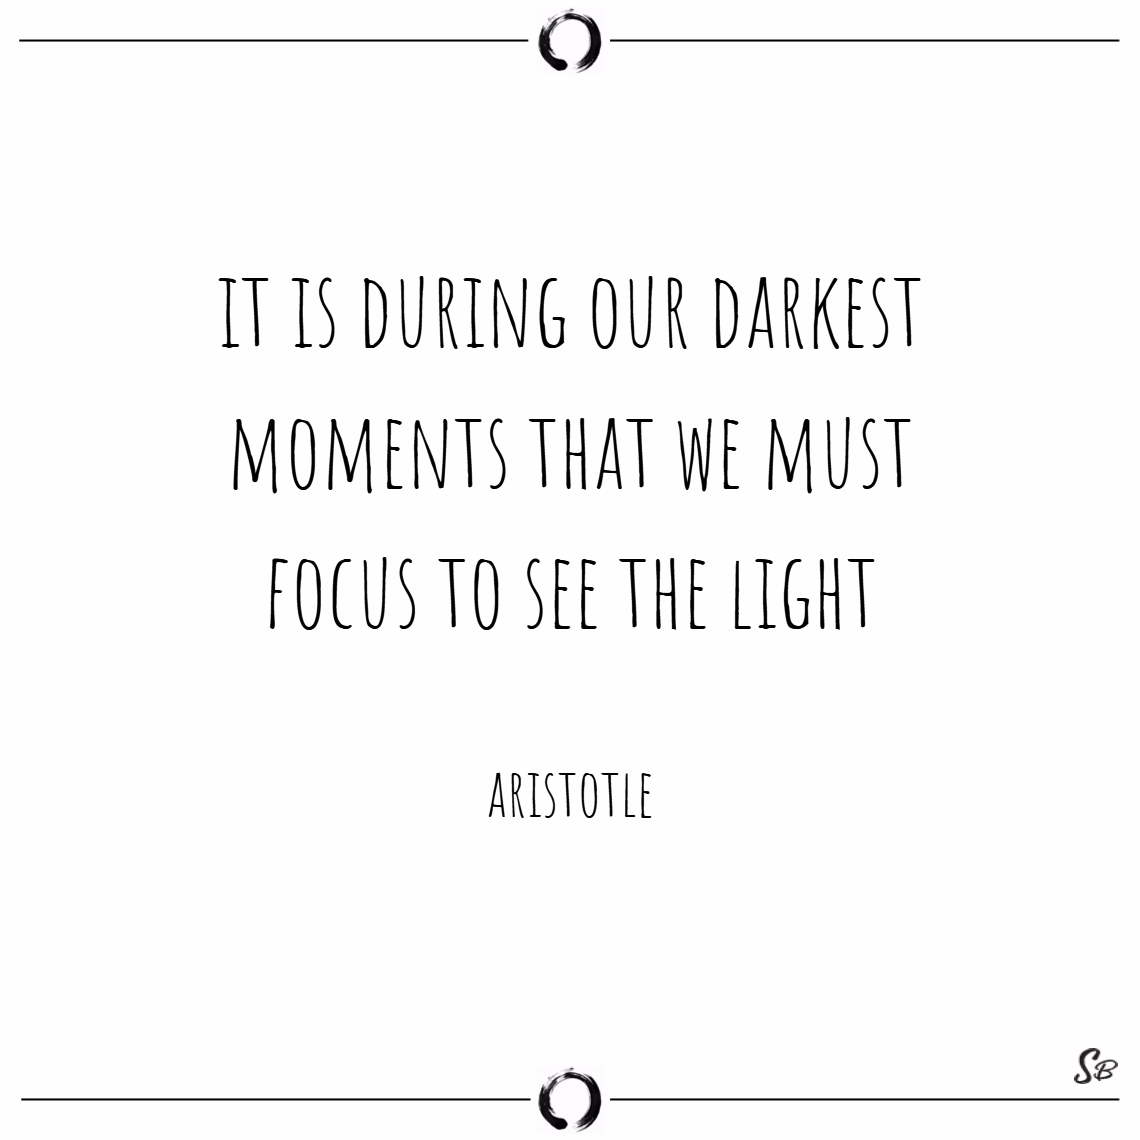 It is during our darkest moments that we must focus to see the light. – aristotle